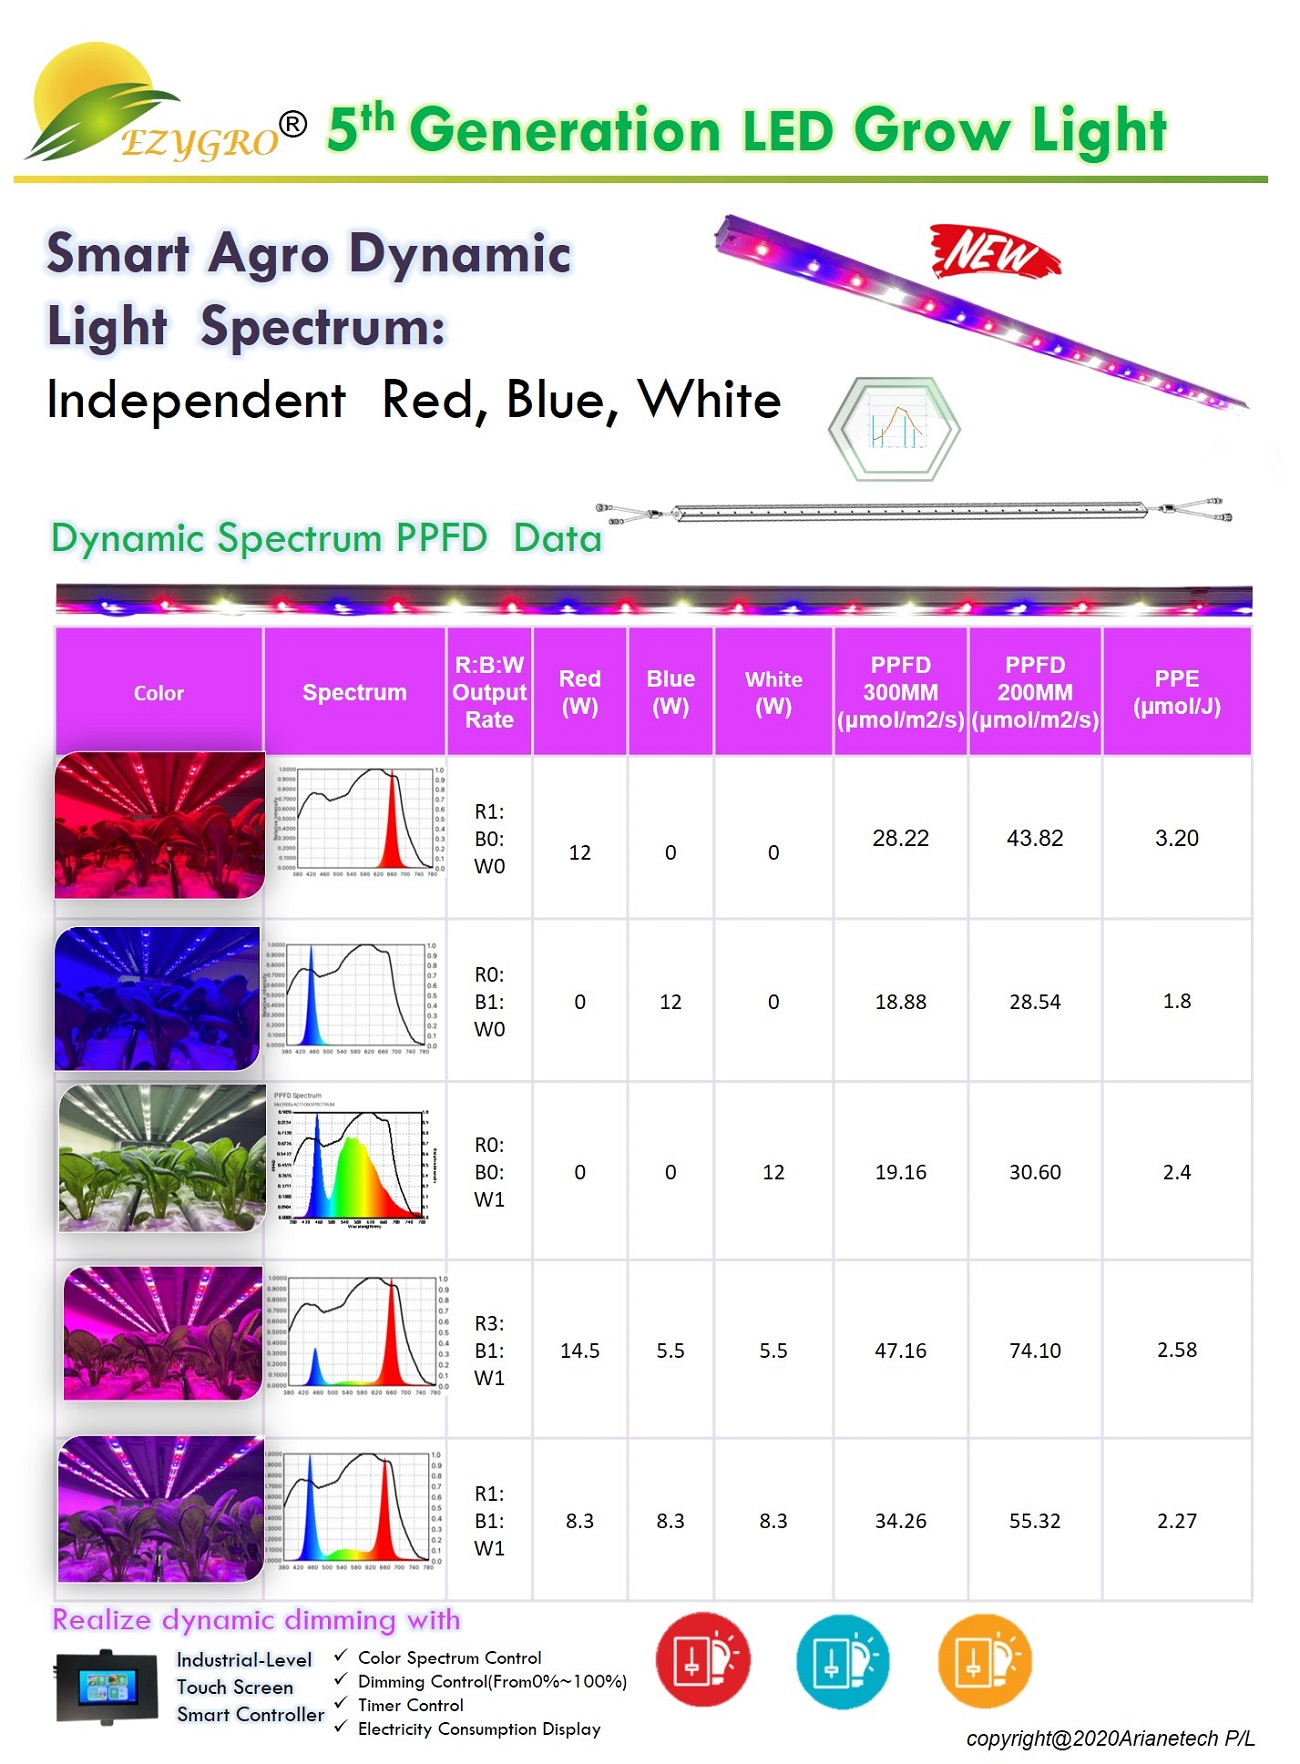 5 generation ezygro led grow light bar for crops in vertical farming 12